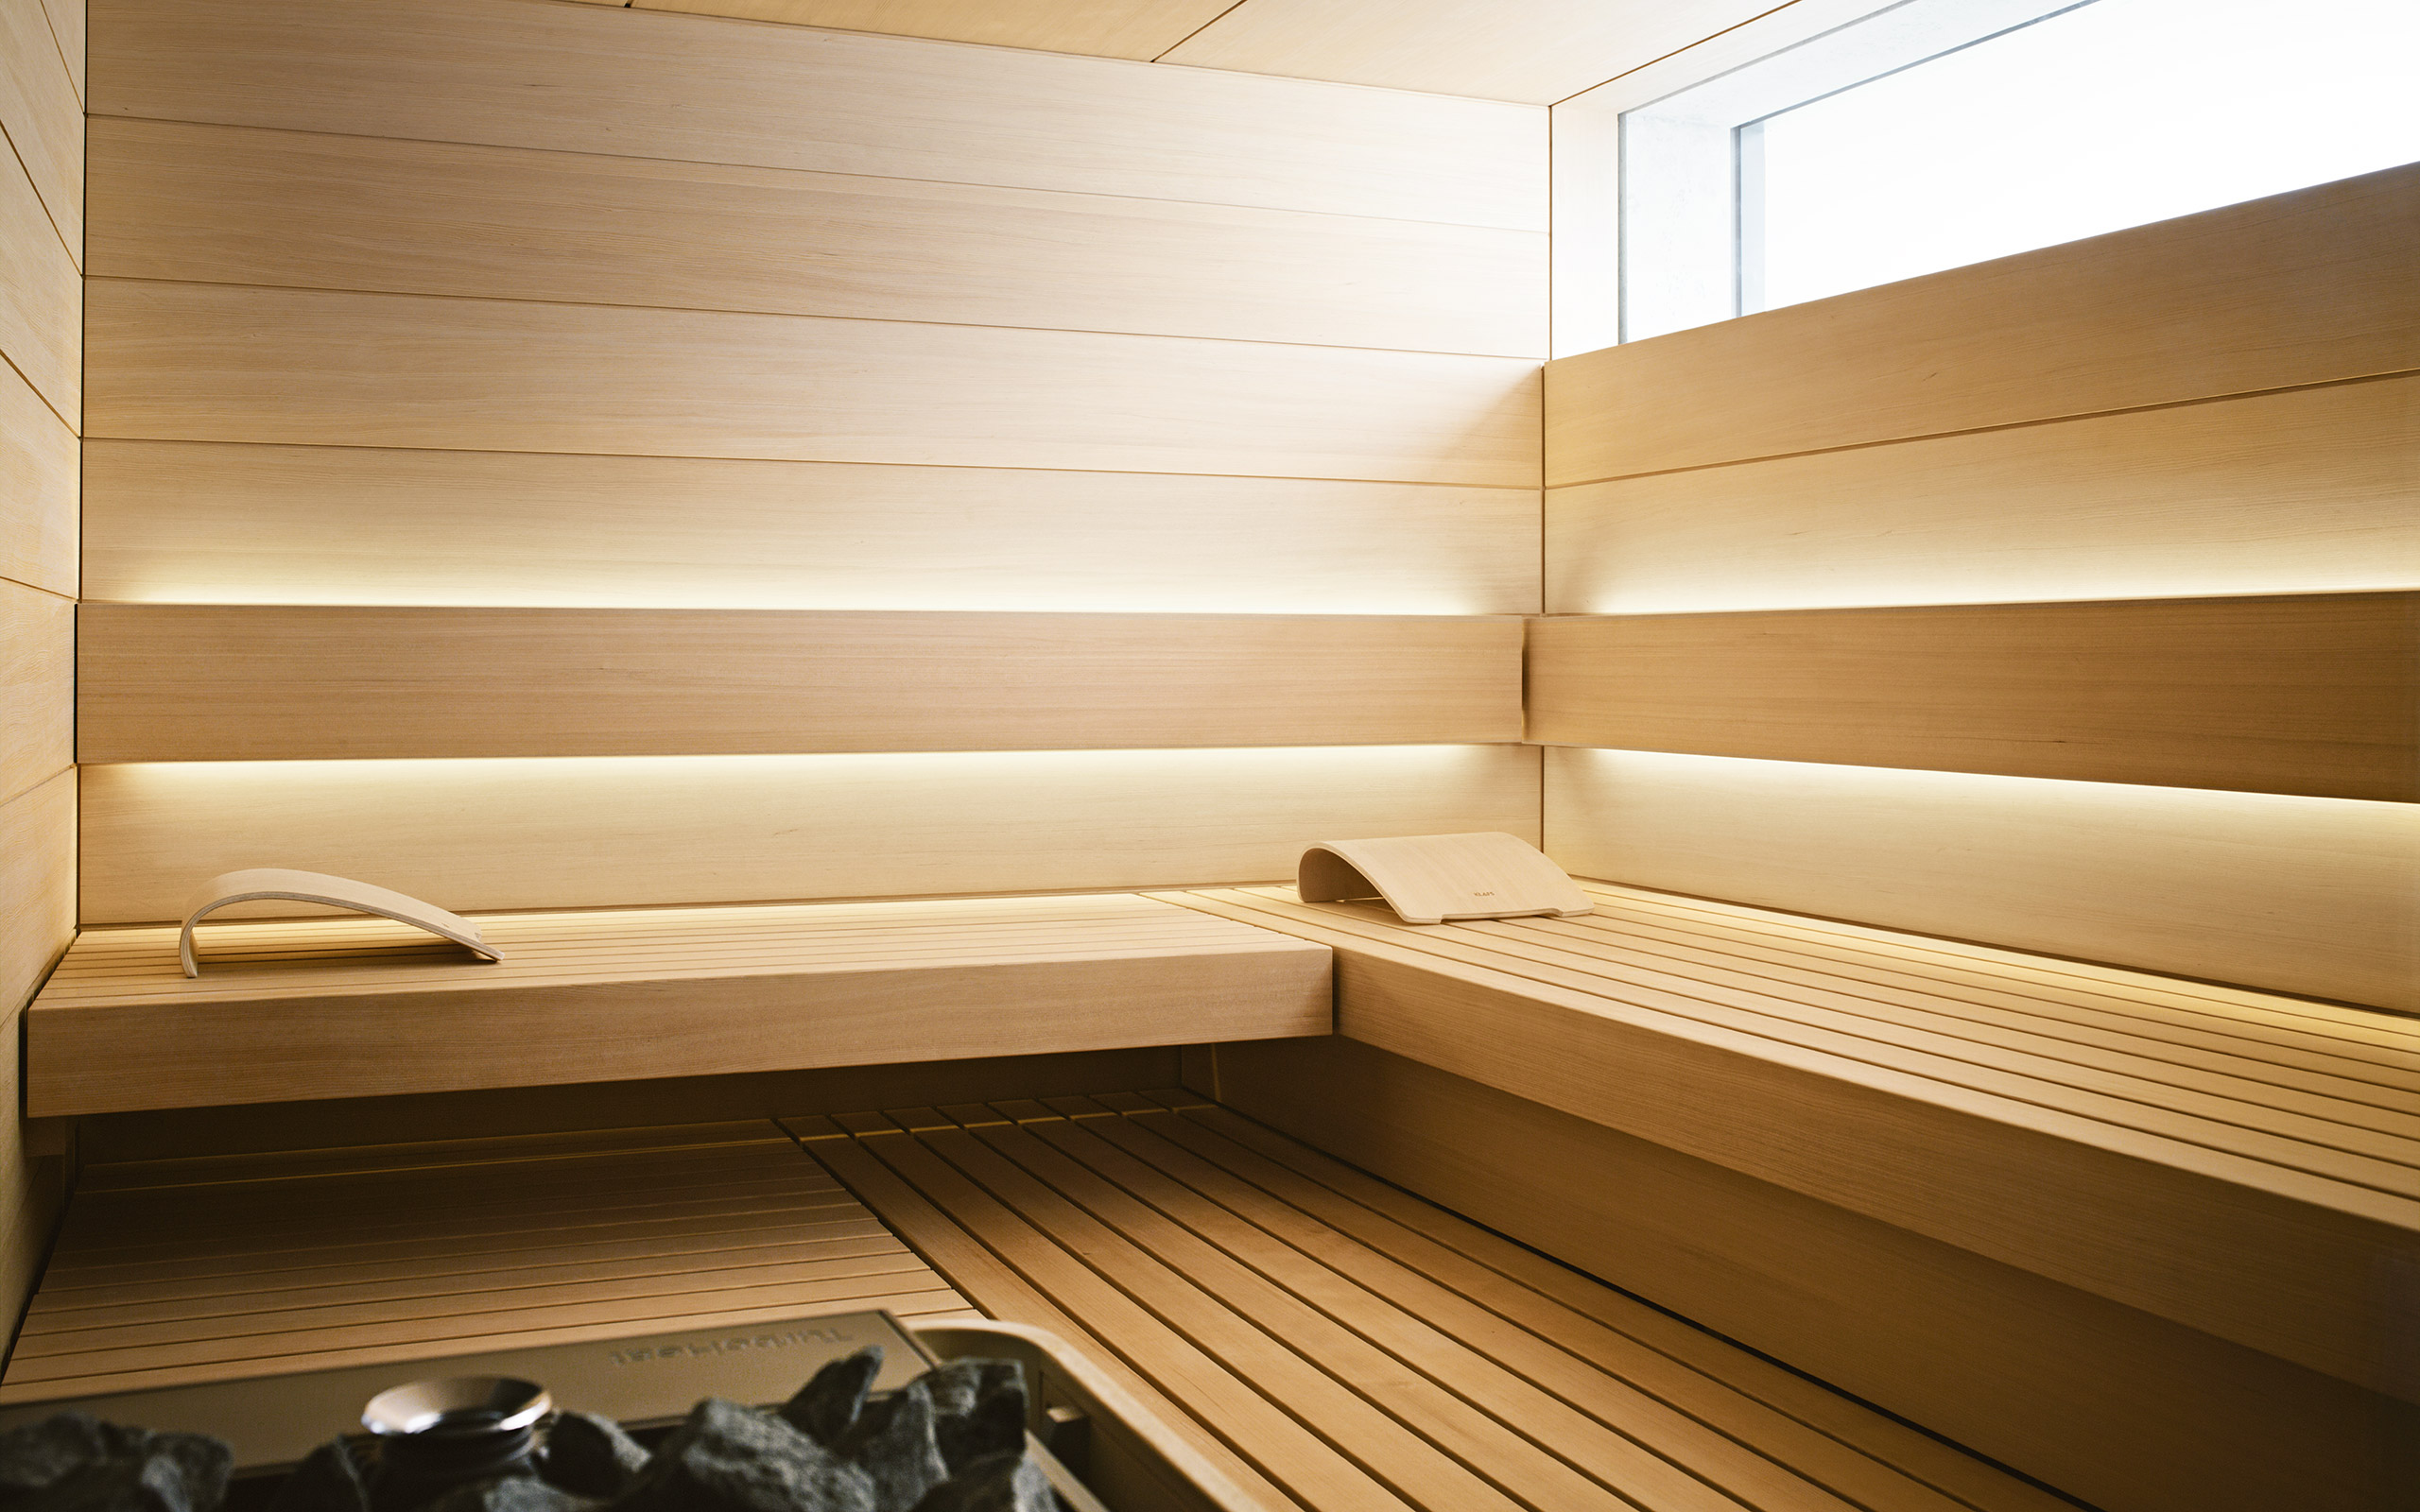 interior view of shape design sauna - Sauna Design Ideas